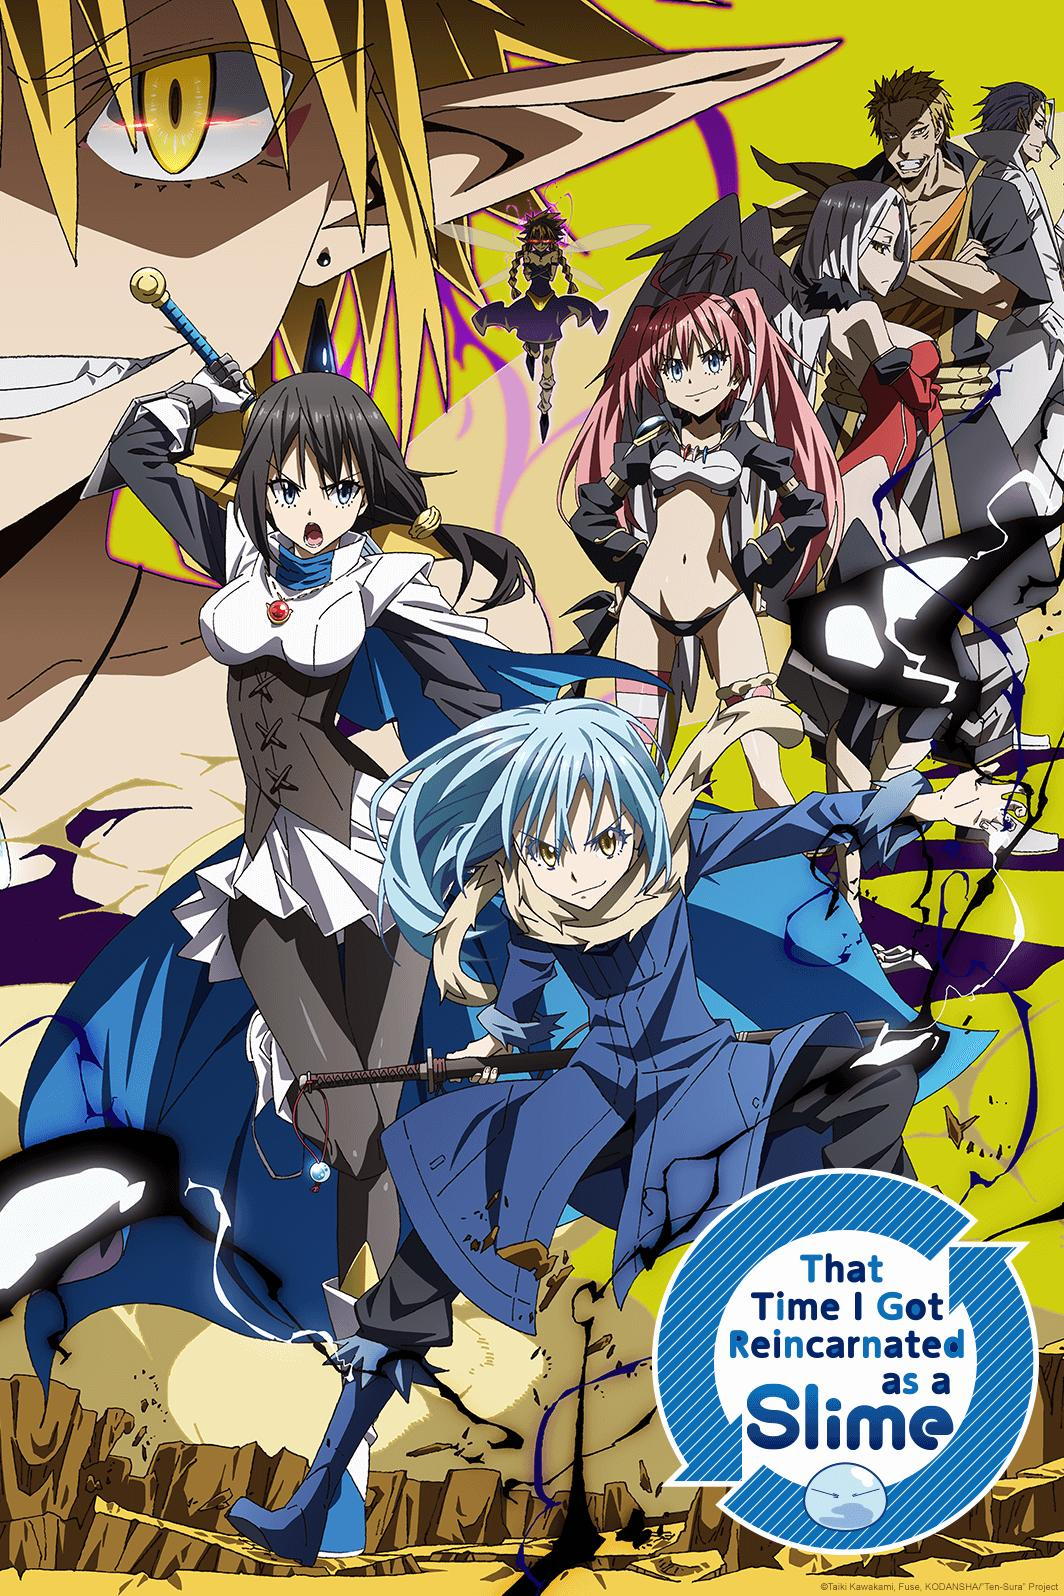 That Time I Got Reincarnated as a Slime Reviews - Crunchyroll